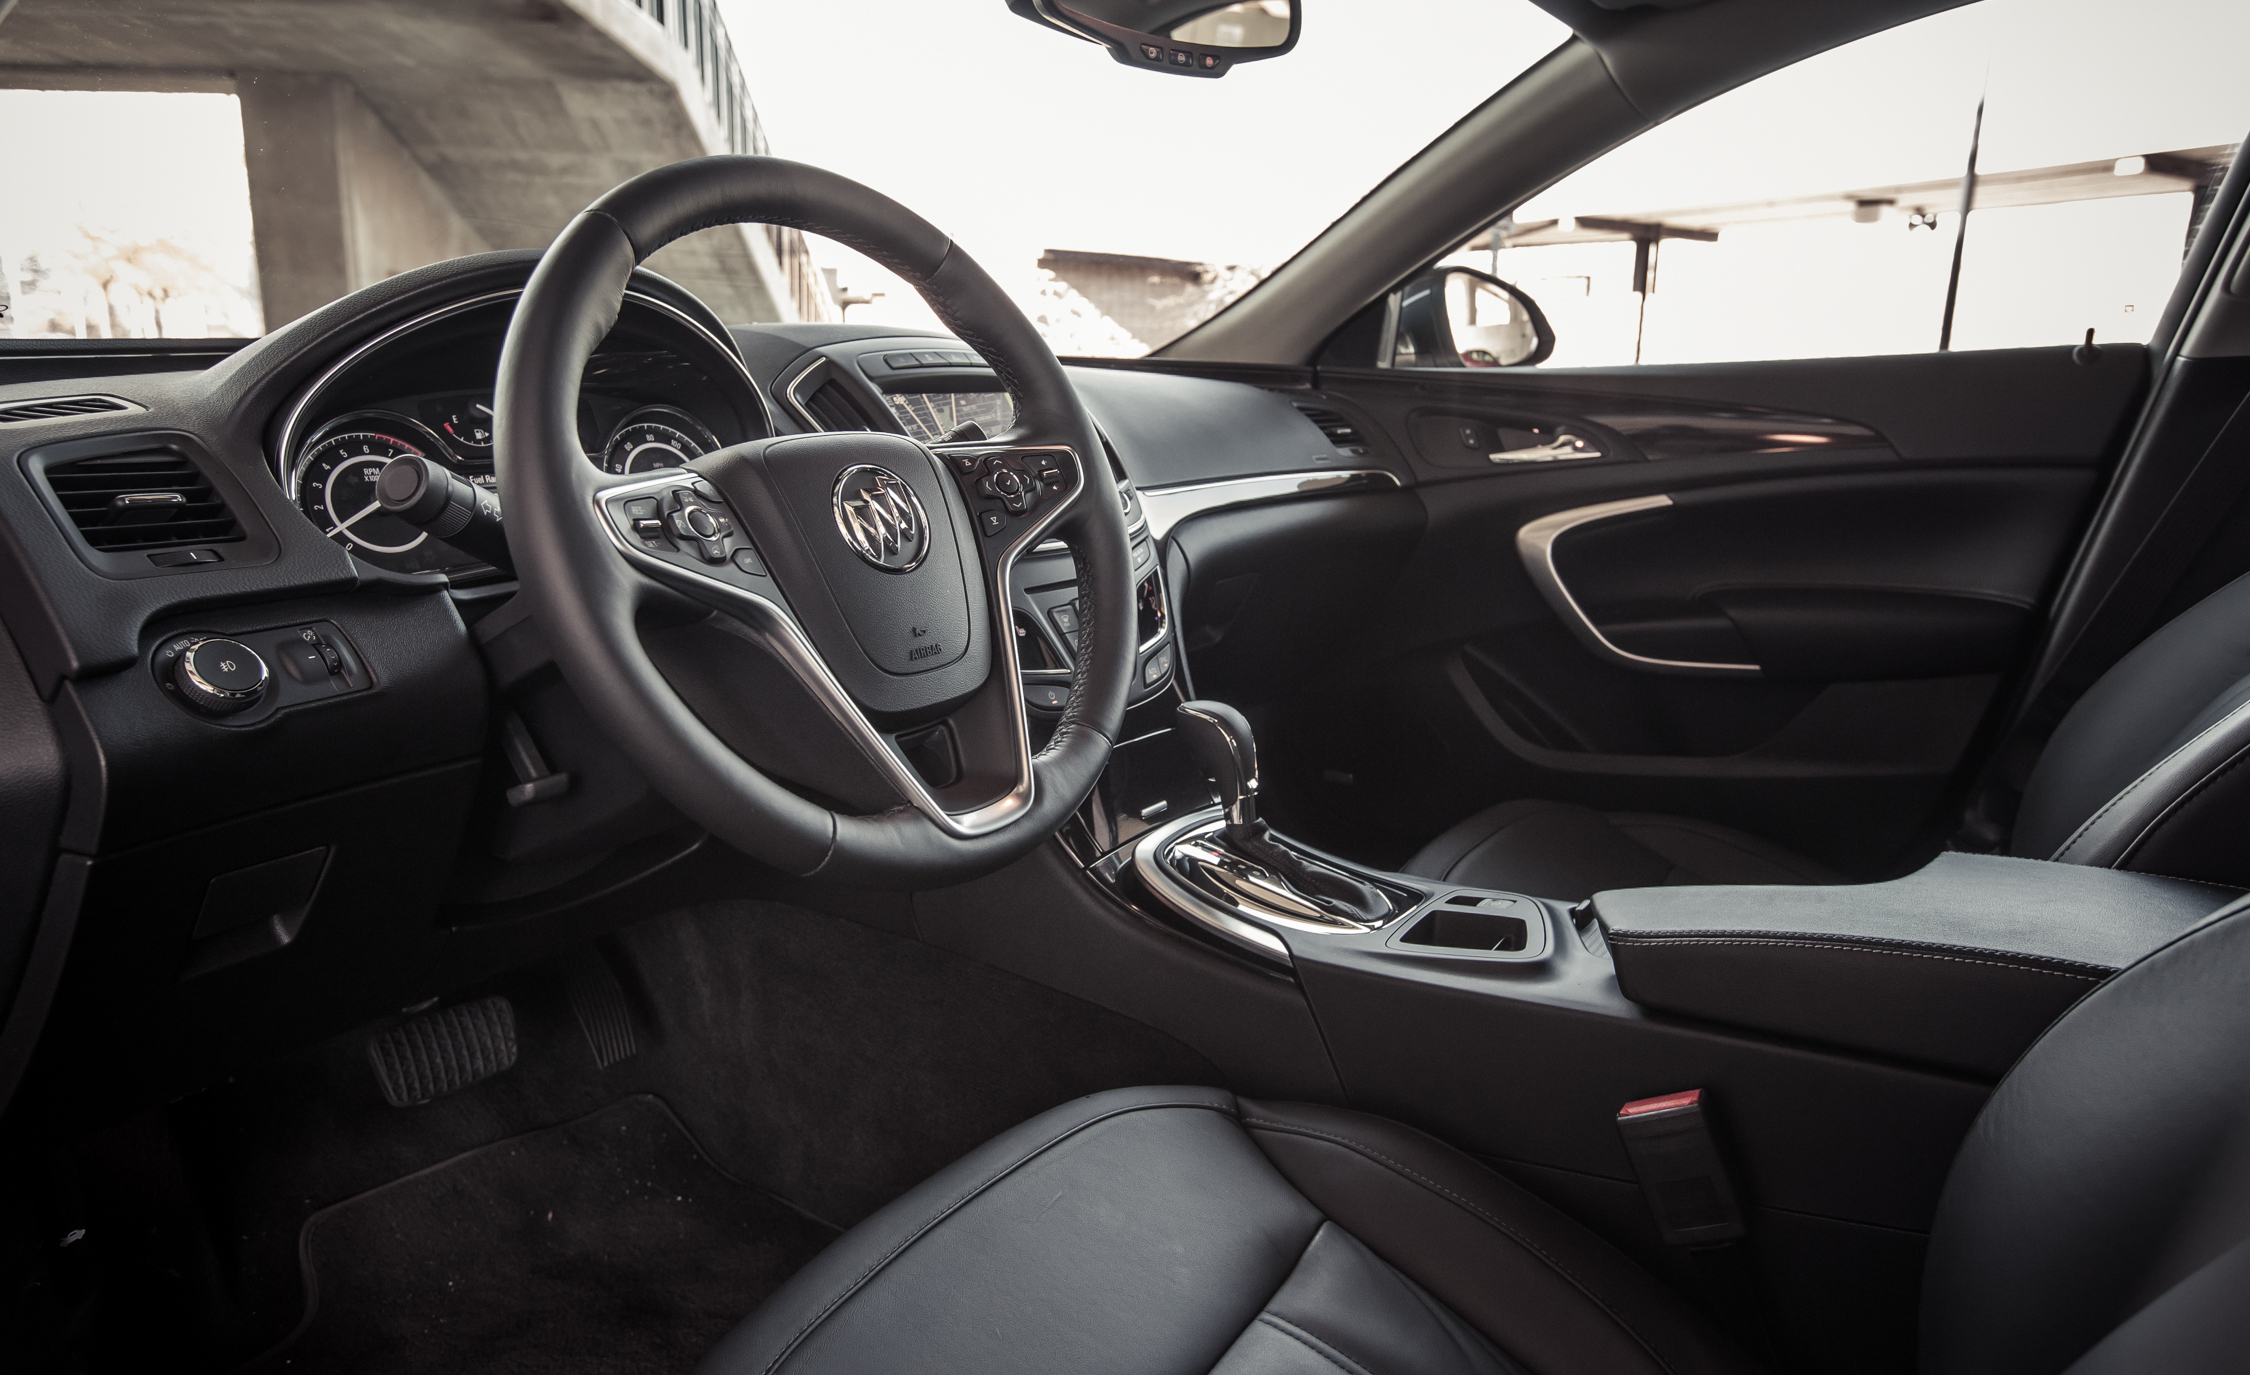 2014 Buick Regal Turbo Interior (Photo 26 of 30)